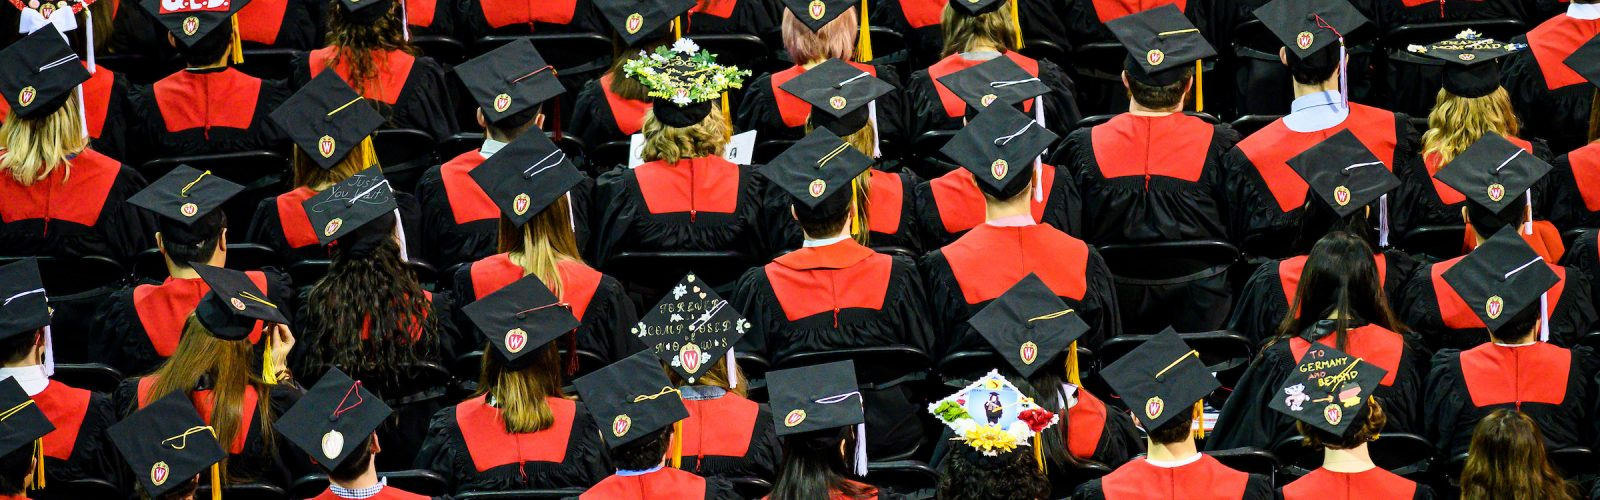 rows of graduates in regalia, sitting in chairs